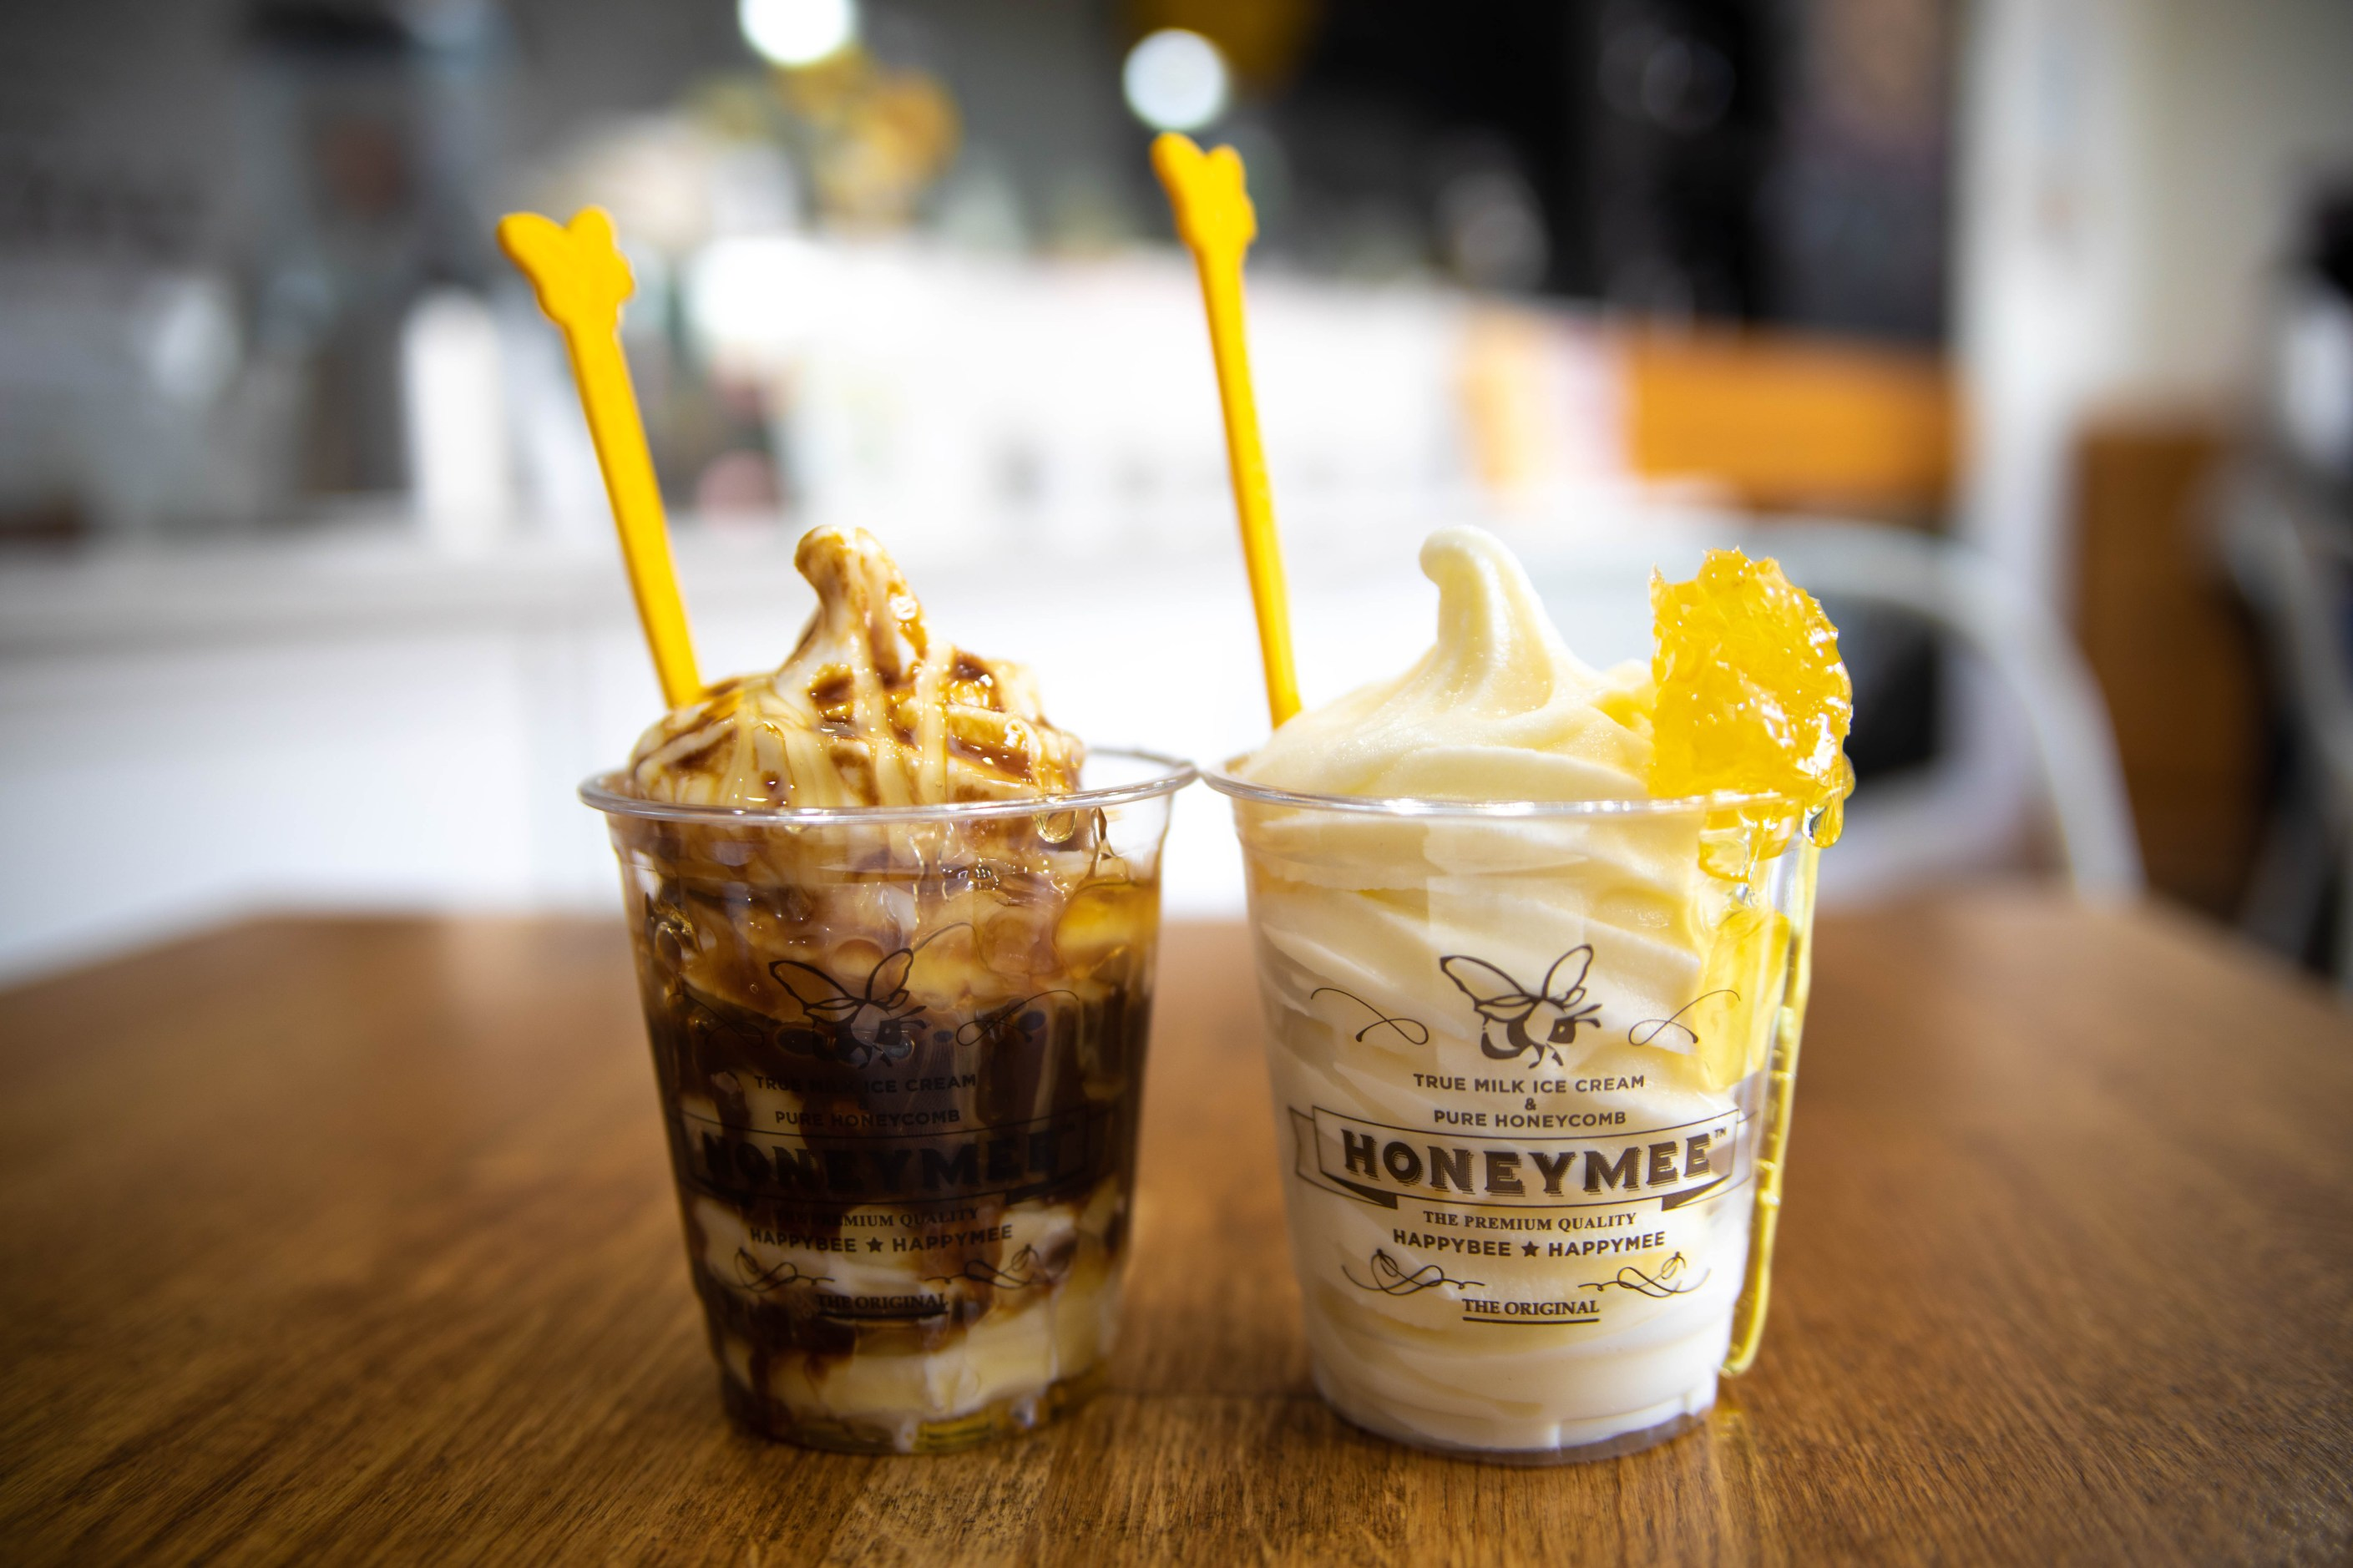 The Honeymee and Honey Affogato from Honey Affogato from Honeymee Los Angeles Milk and Honeycomb Luxury Ice Cream